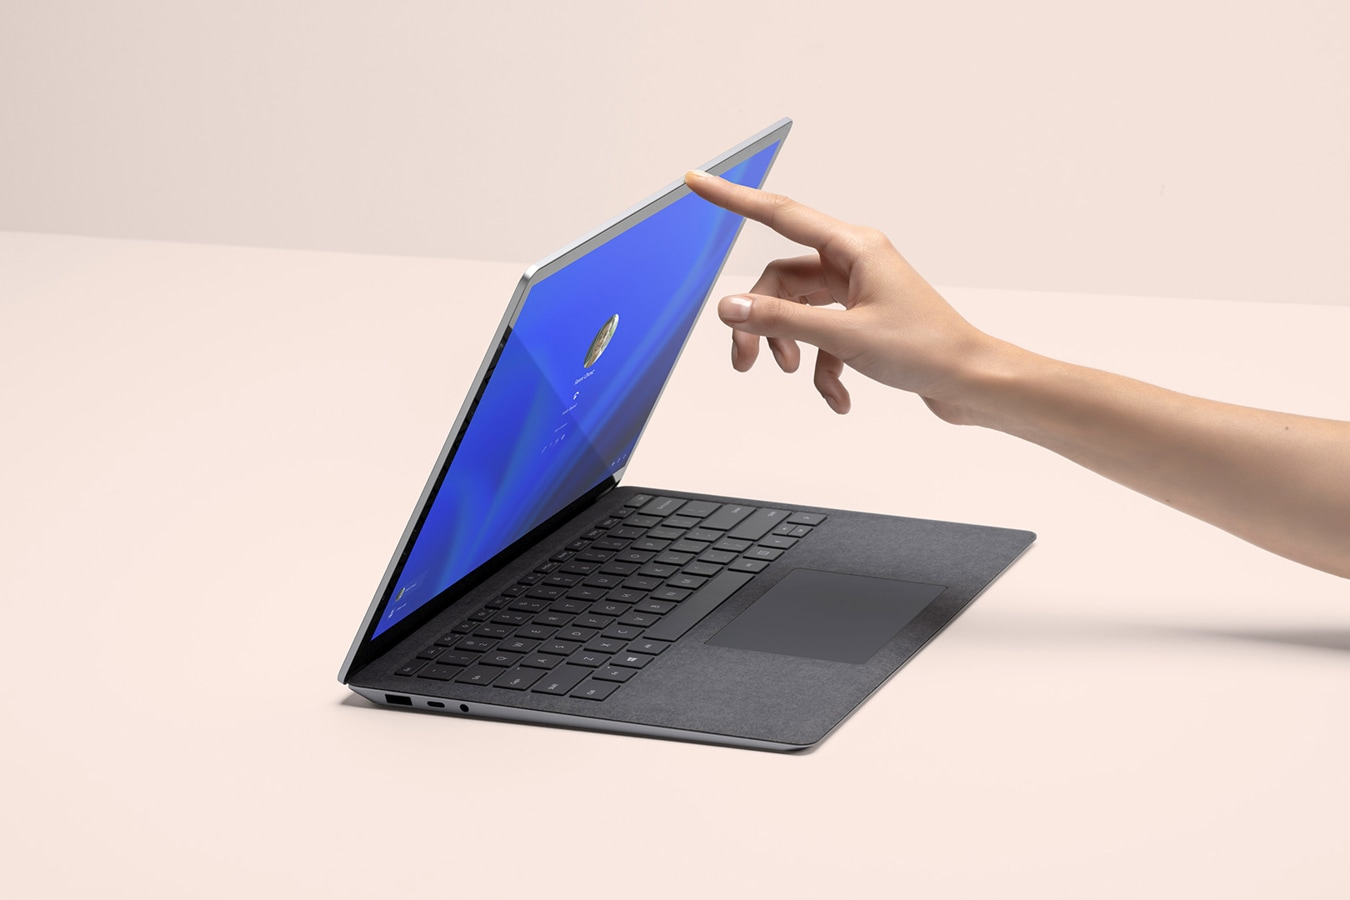 A person's hand is shown lifting the lid of a Surface Laptop 4, with the sign-on screen shown